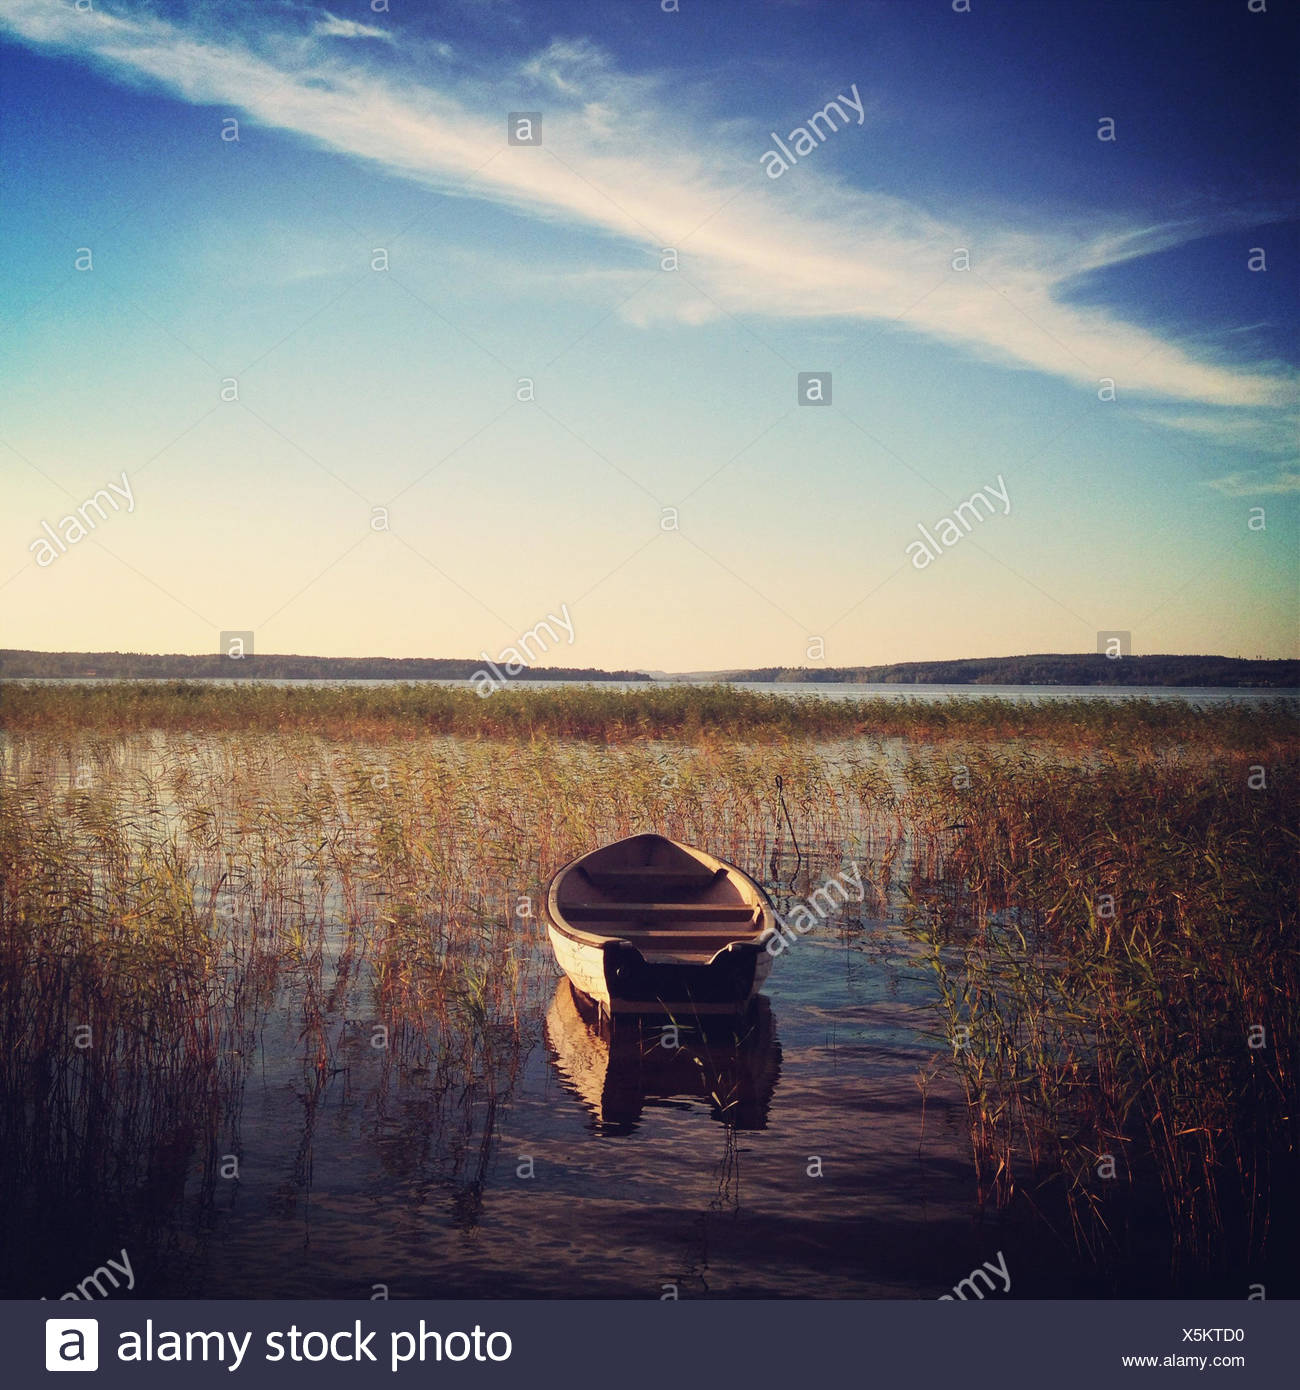 Wooden Rowing boat on lake, Sweden - Stock Image